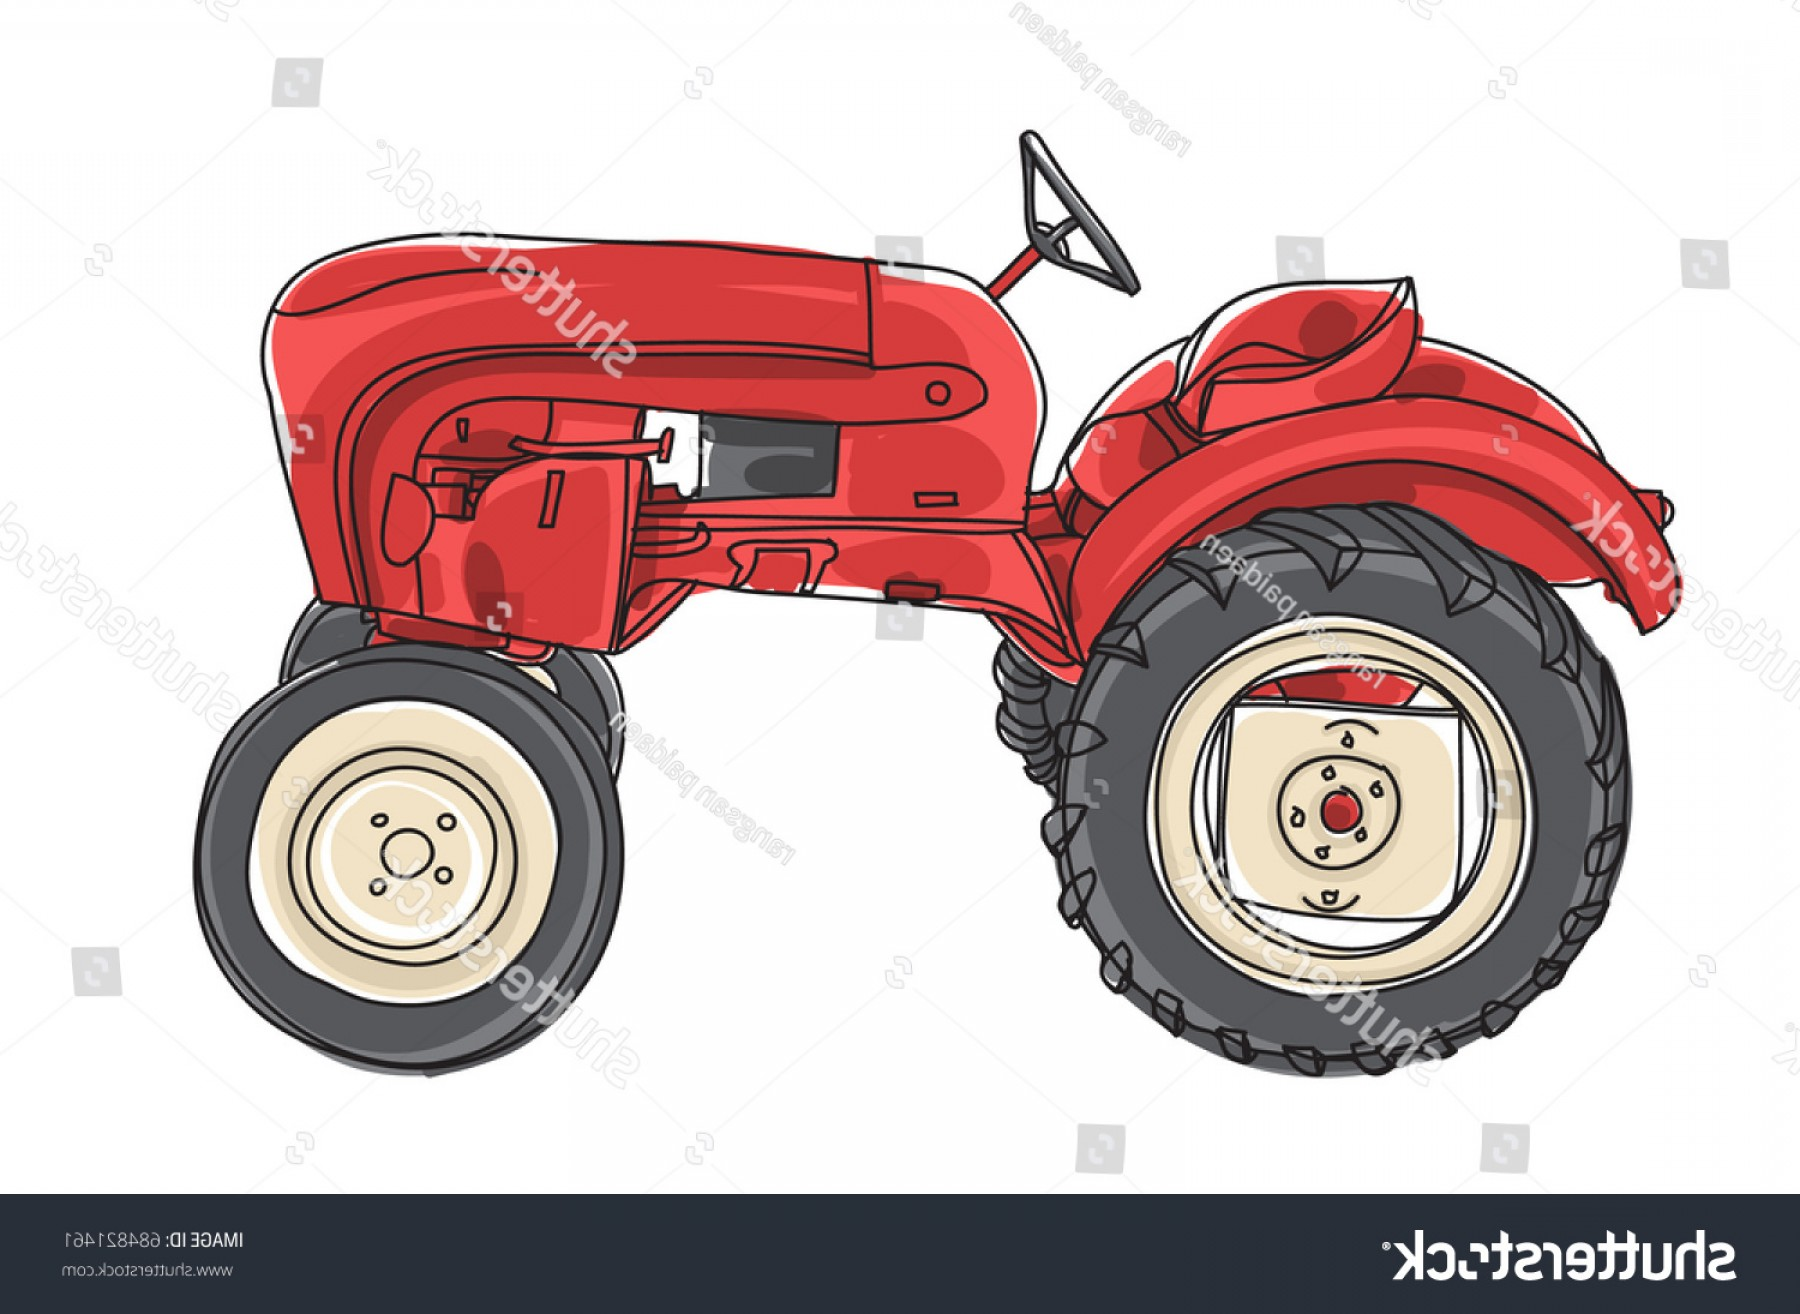 Vintage Tractor Vector Art: Red Tractor Vintage Hand Drawn Vector